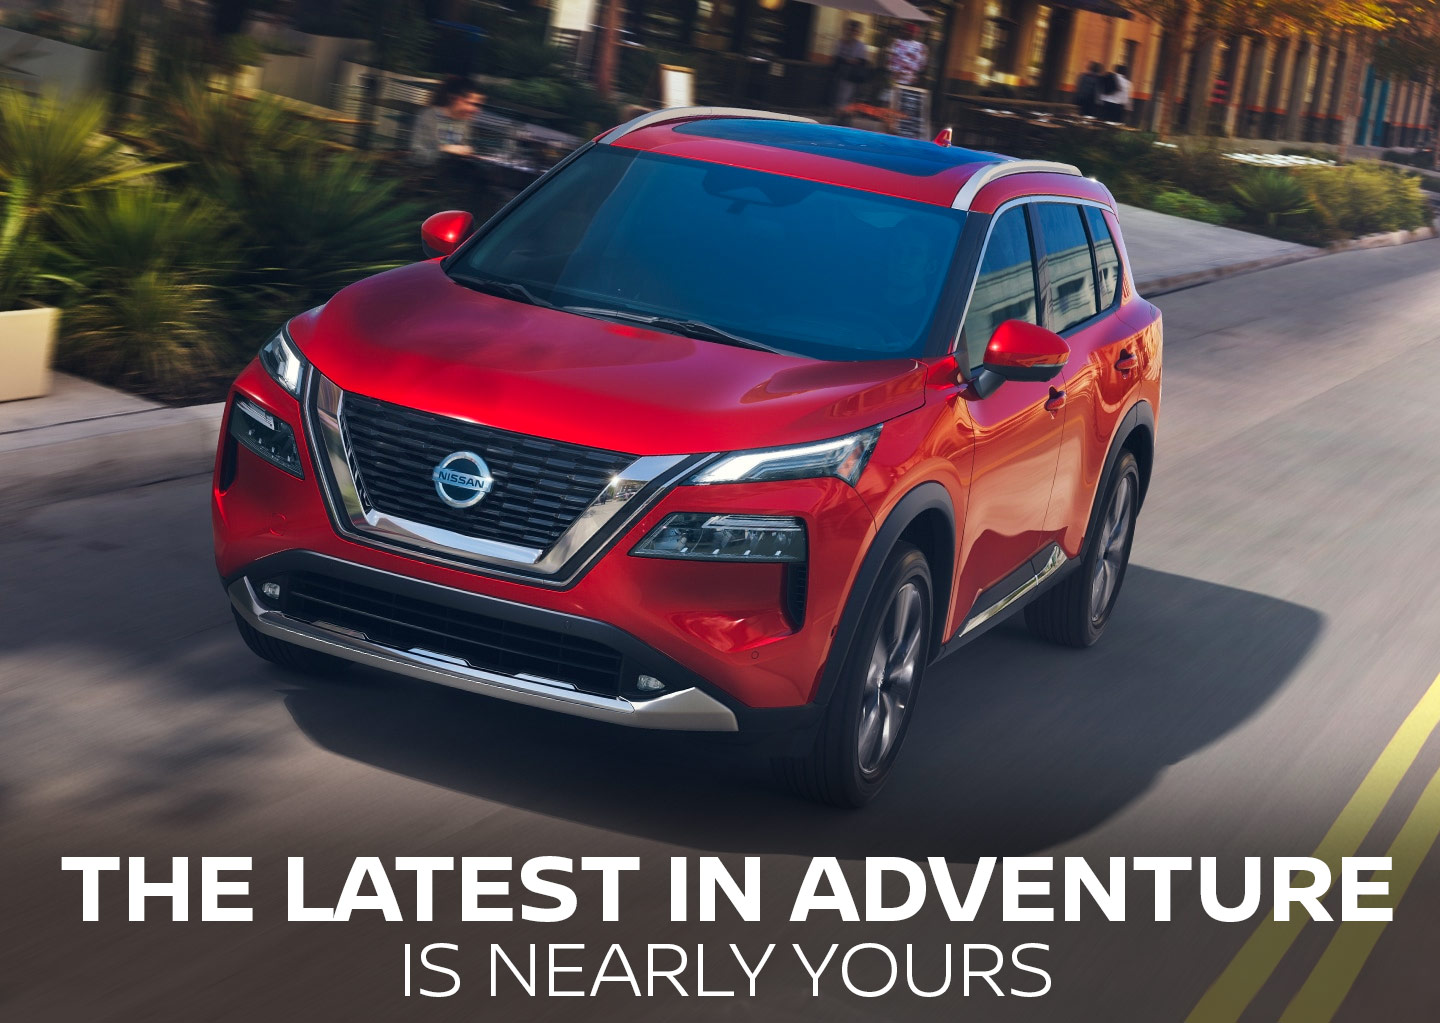 the latest in adventure is nearly yours